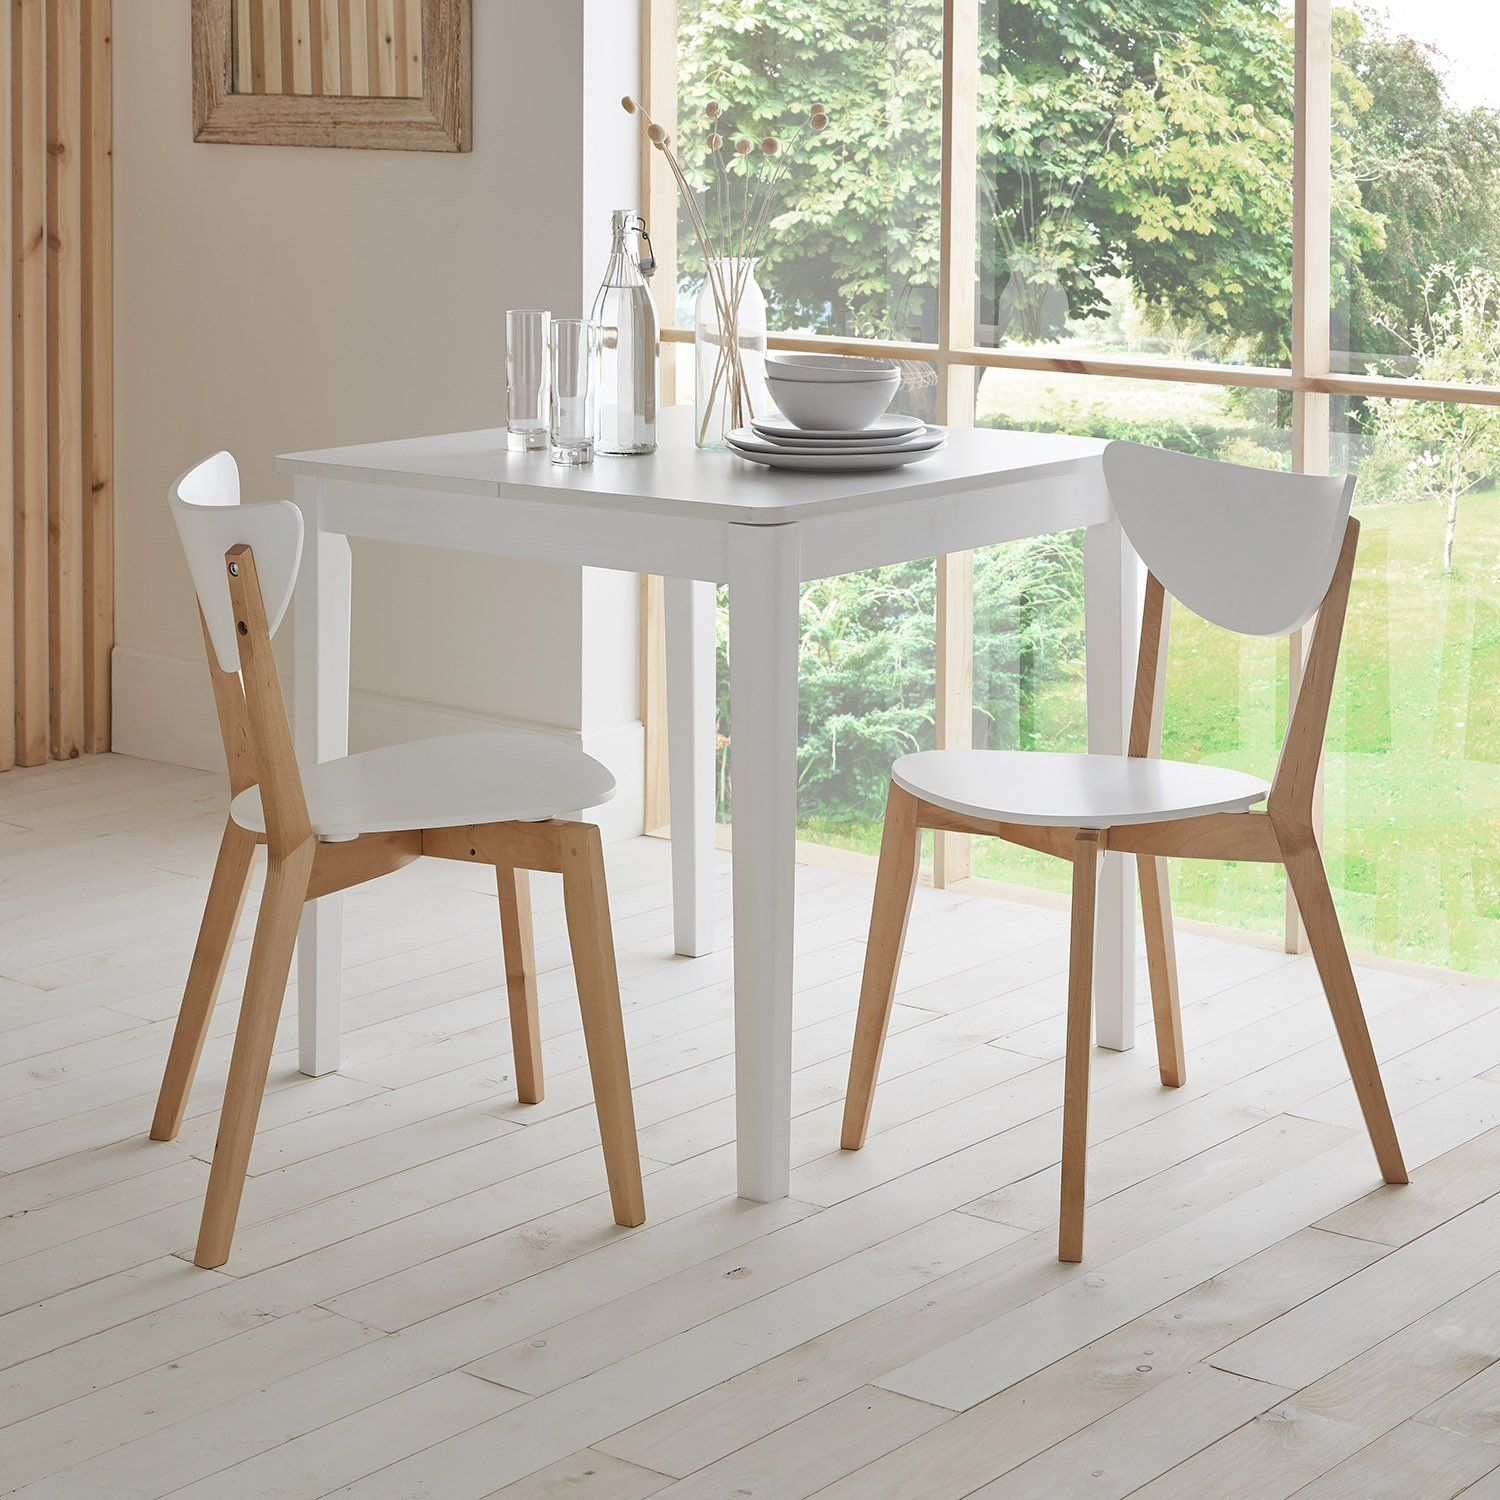 White extendable dining table with two chairs set beside a window